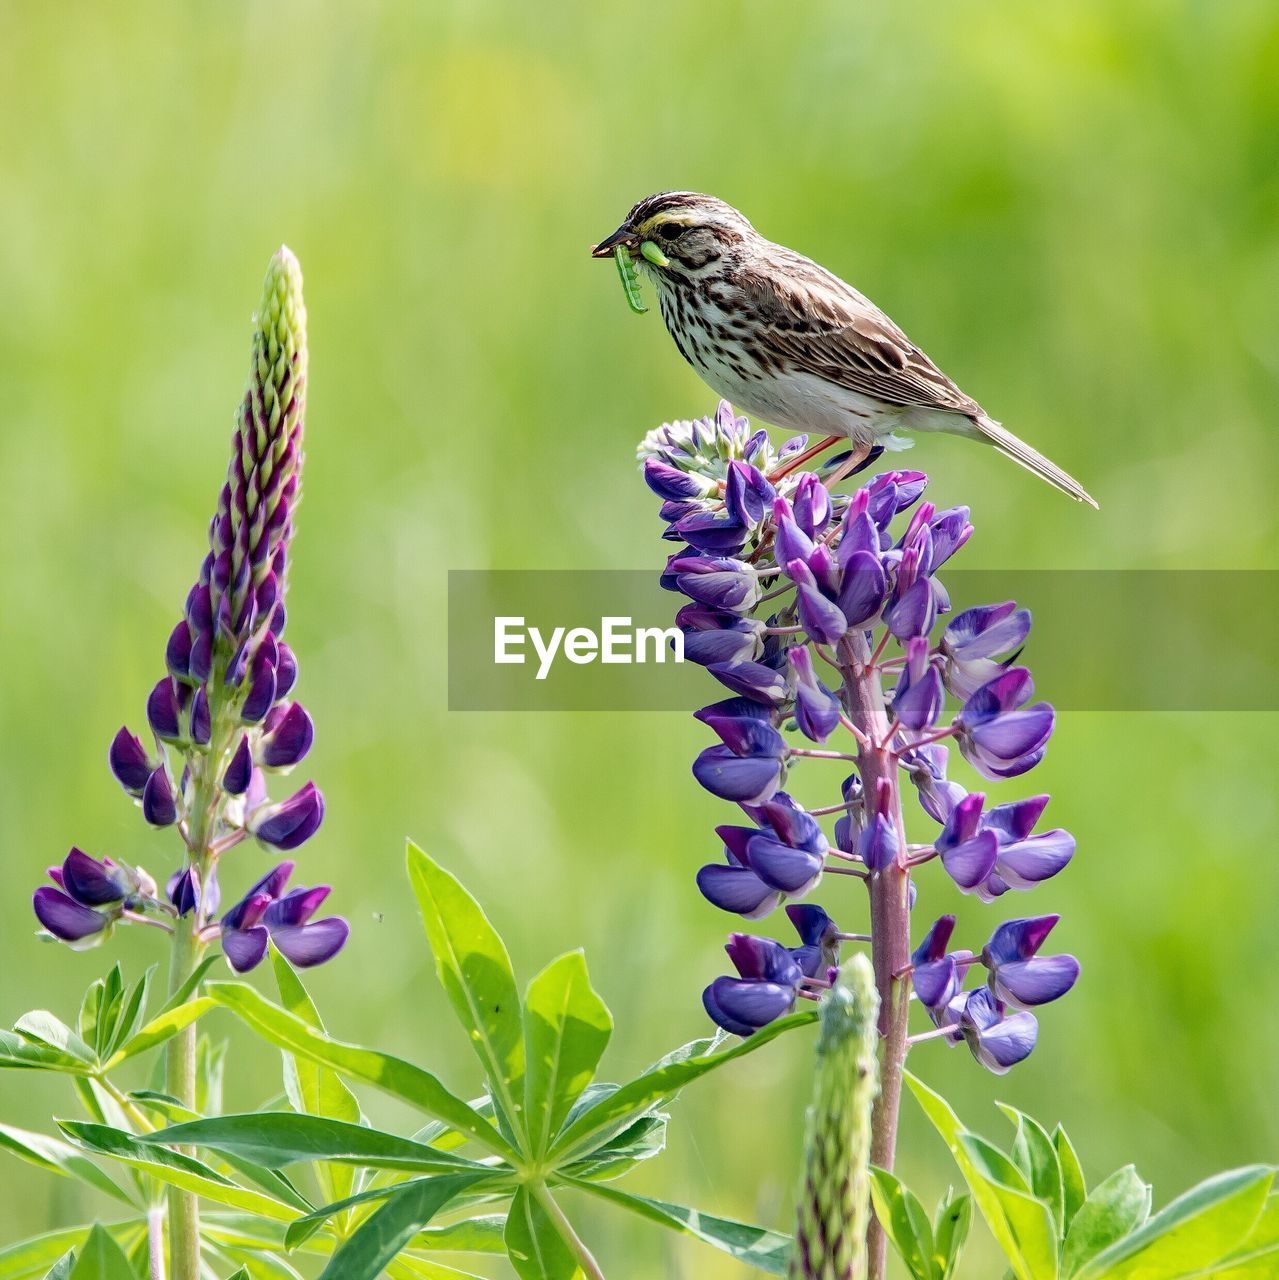 Bird with worm in beak perching on purple flower during sunny day